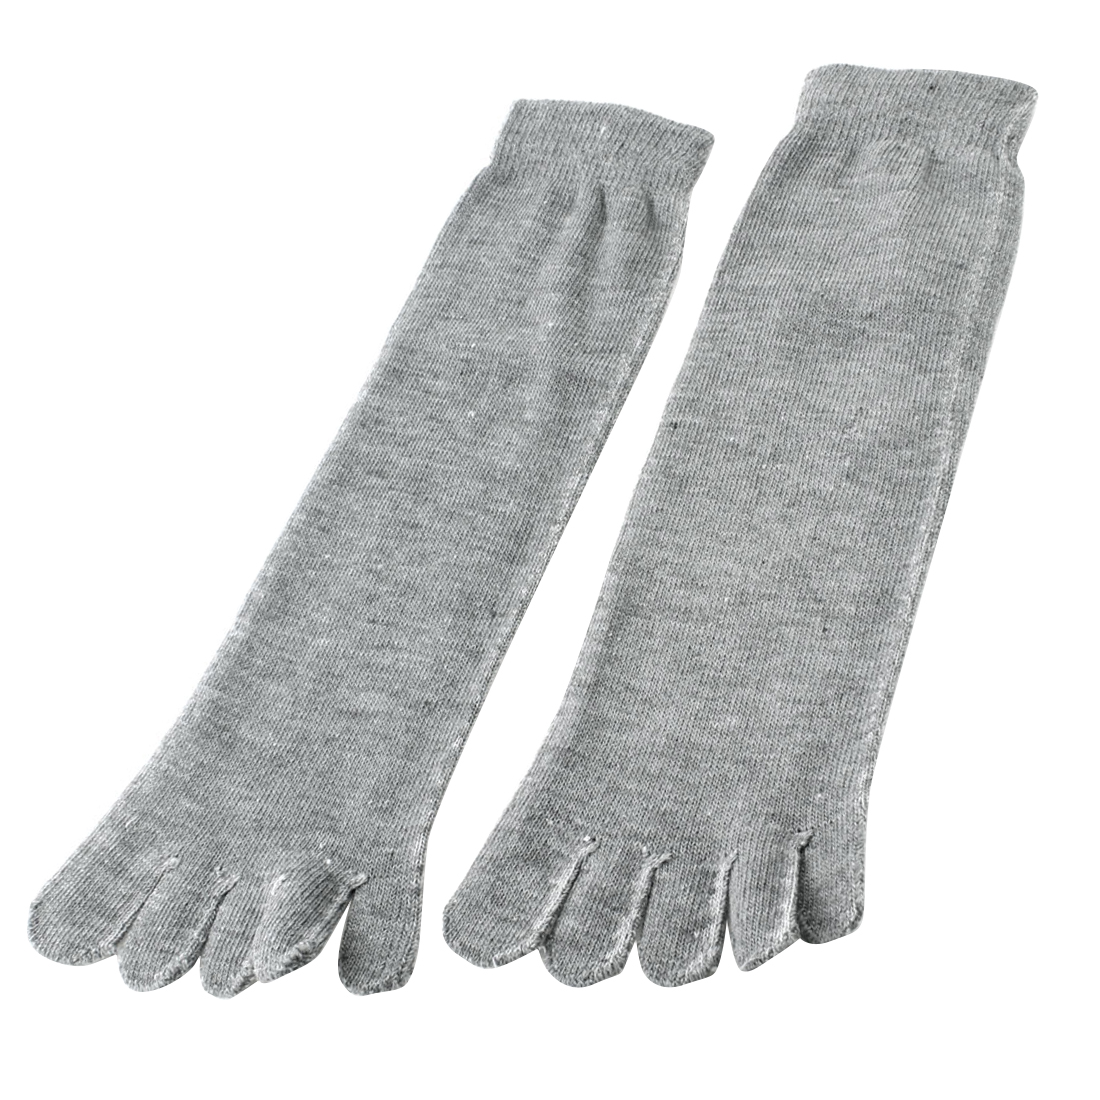 Unisex Autumn Ankle High Length Elastic Five Fingers Feet Toe Socks Gray Pair